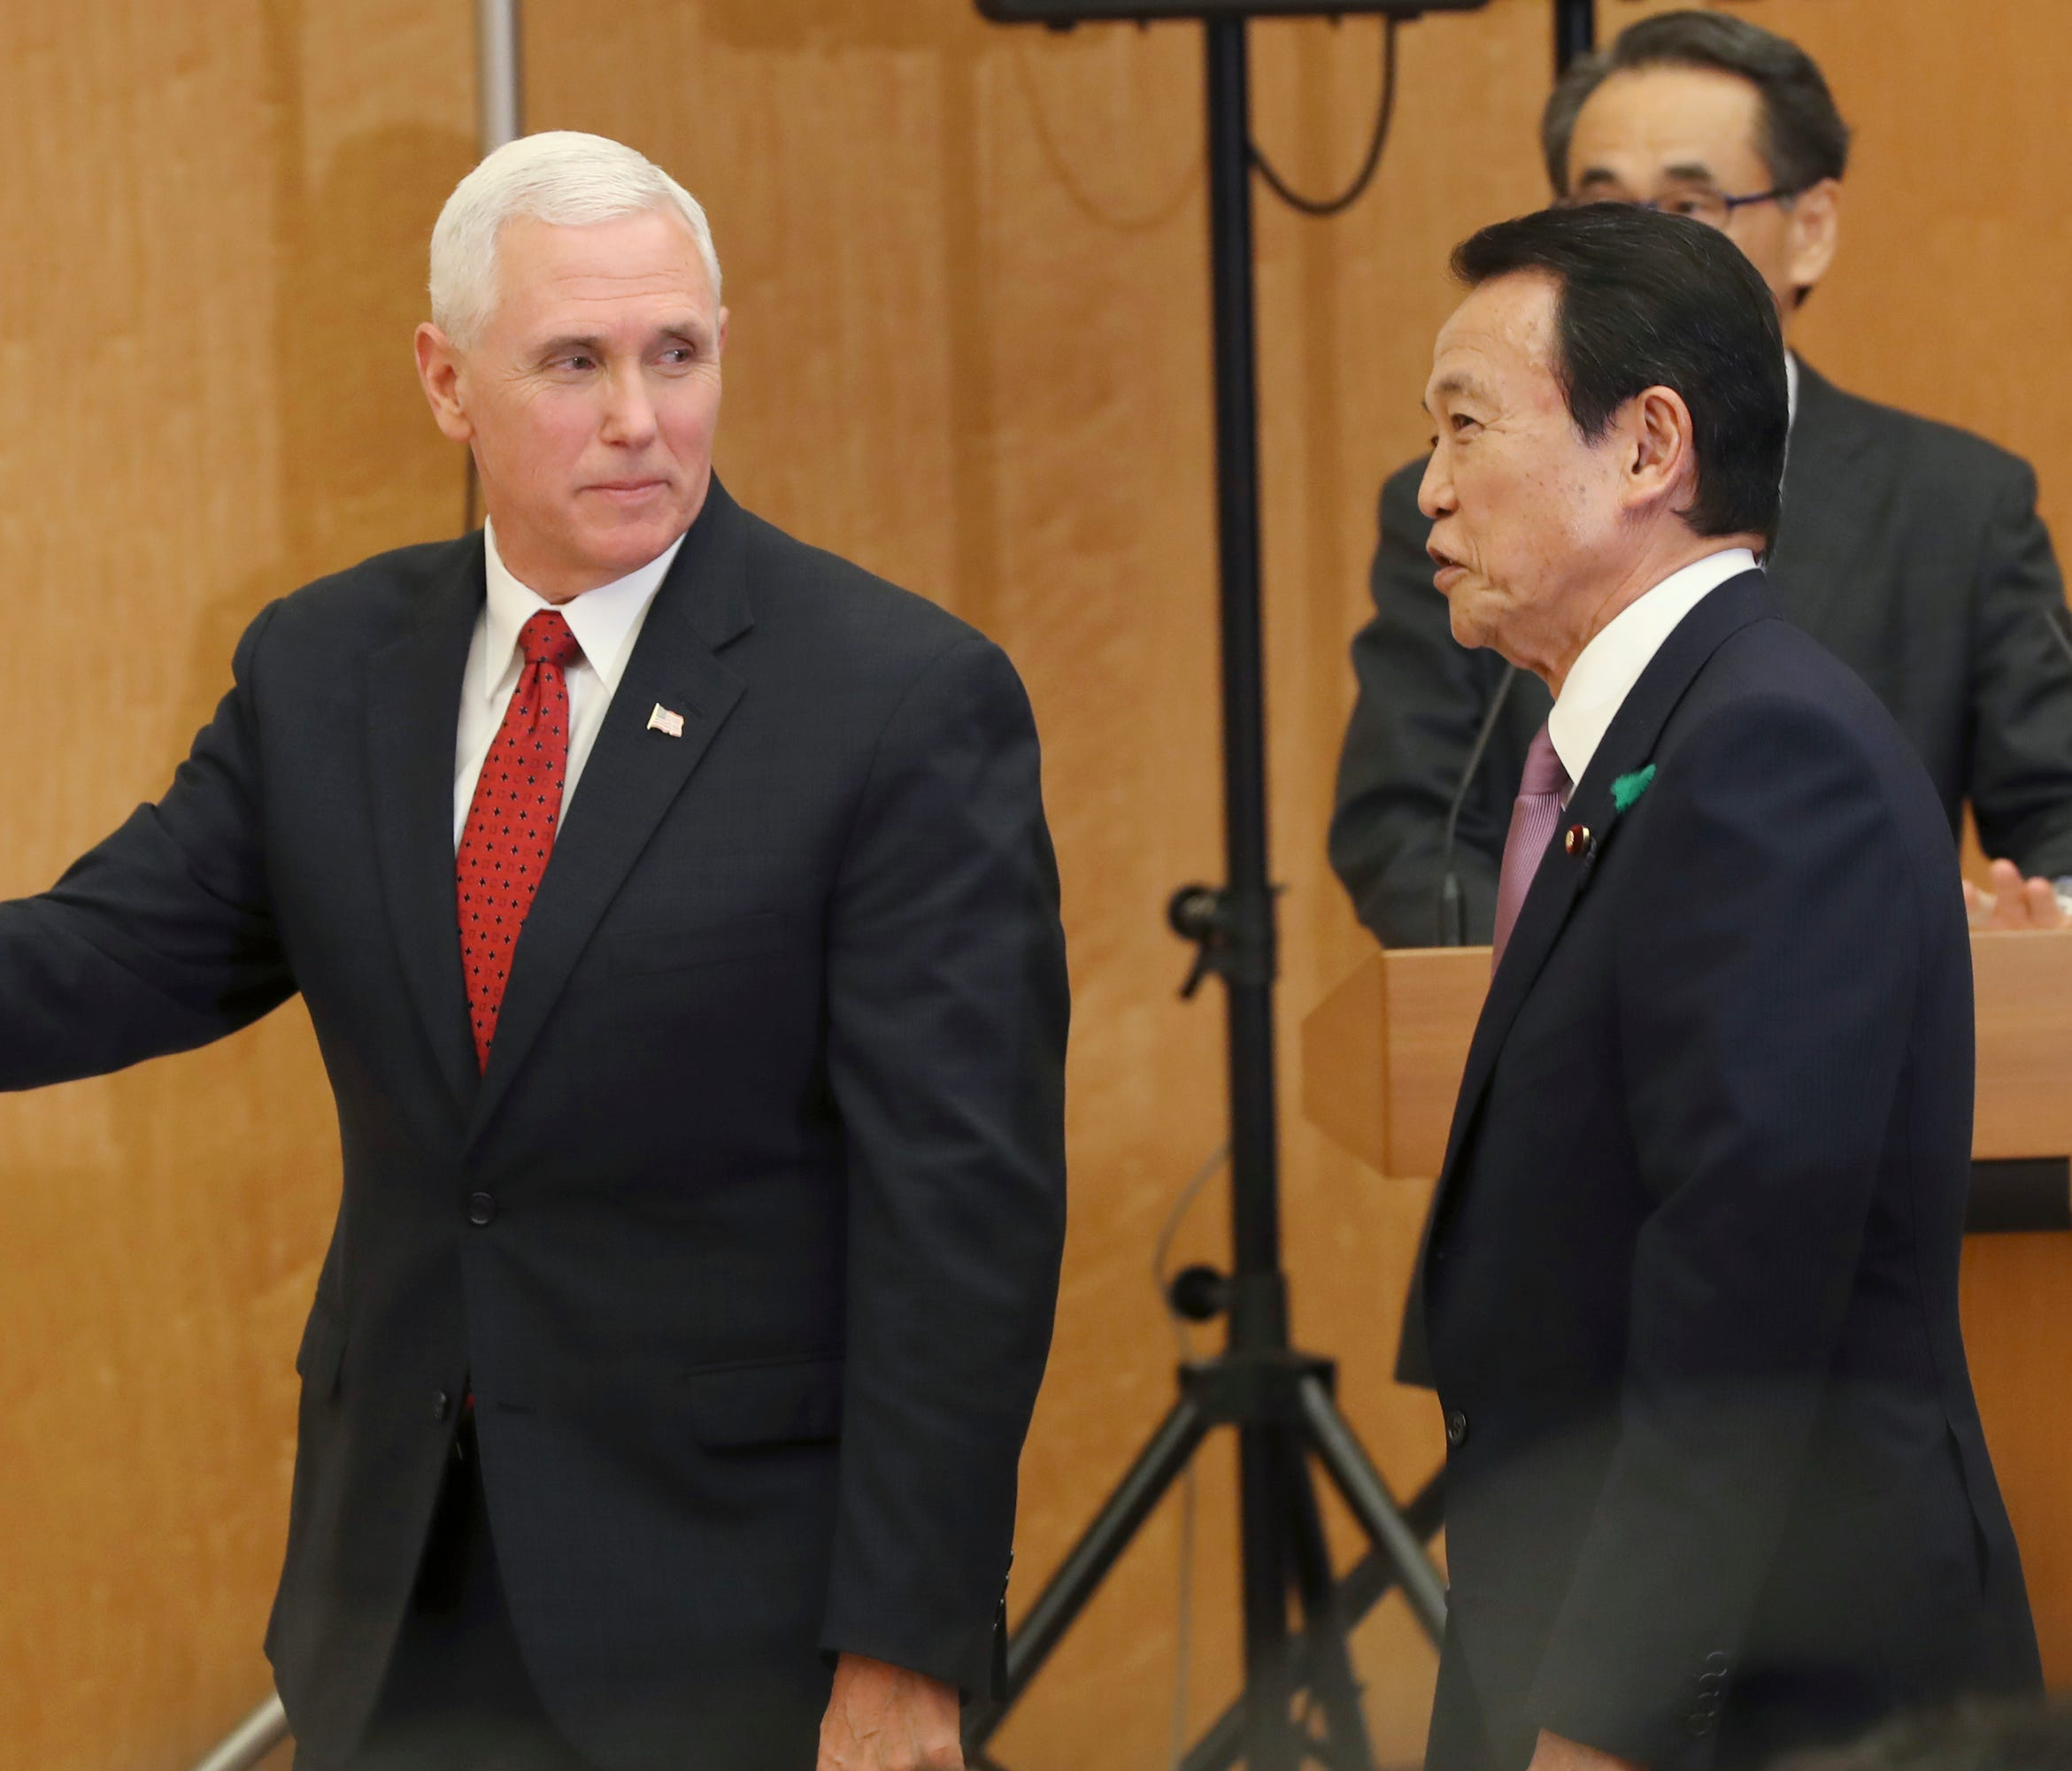 Vice President Mike Pence and Japanese Deputy Prime Minister and Minister of Finance Taro Aso walk in the venue of the joint press conference at the prime minister's office in Tokyo, Tuesday, April 18, 2017.